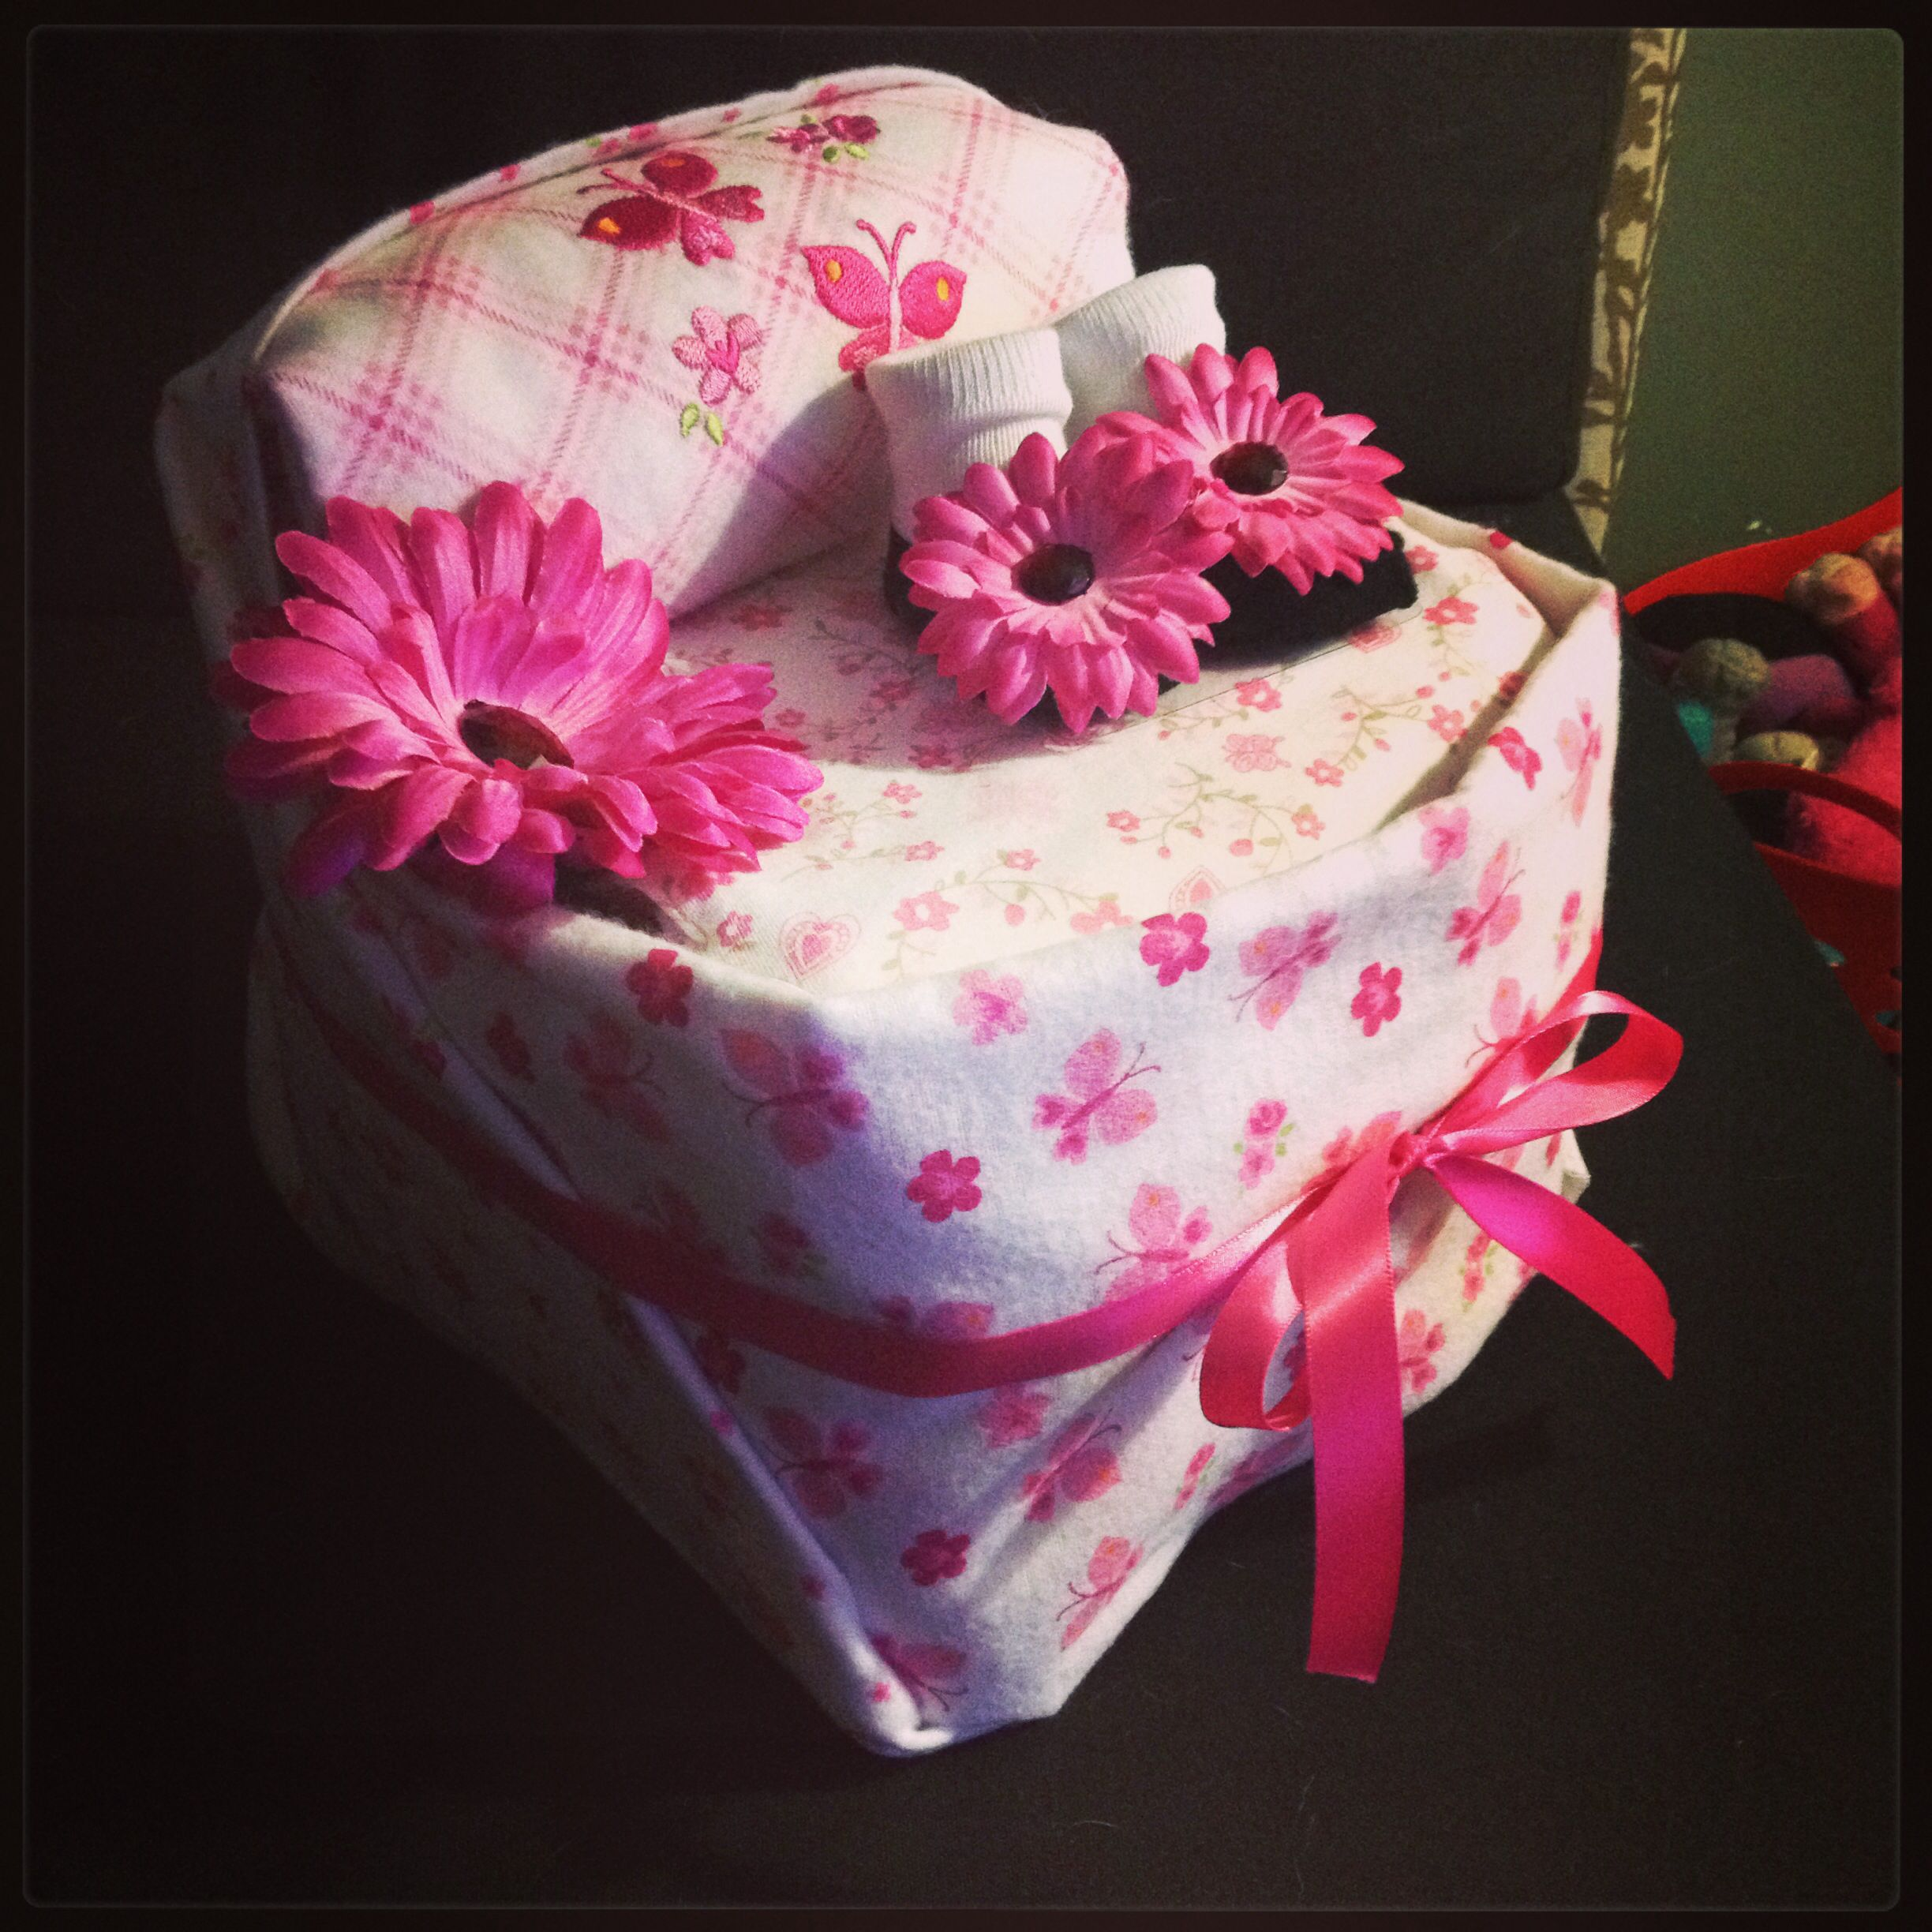 Baby Gifts Ideas Pinterest : Diaper bassinet baby shower gift ideas